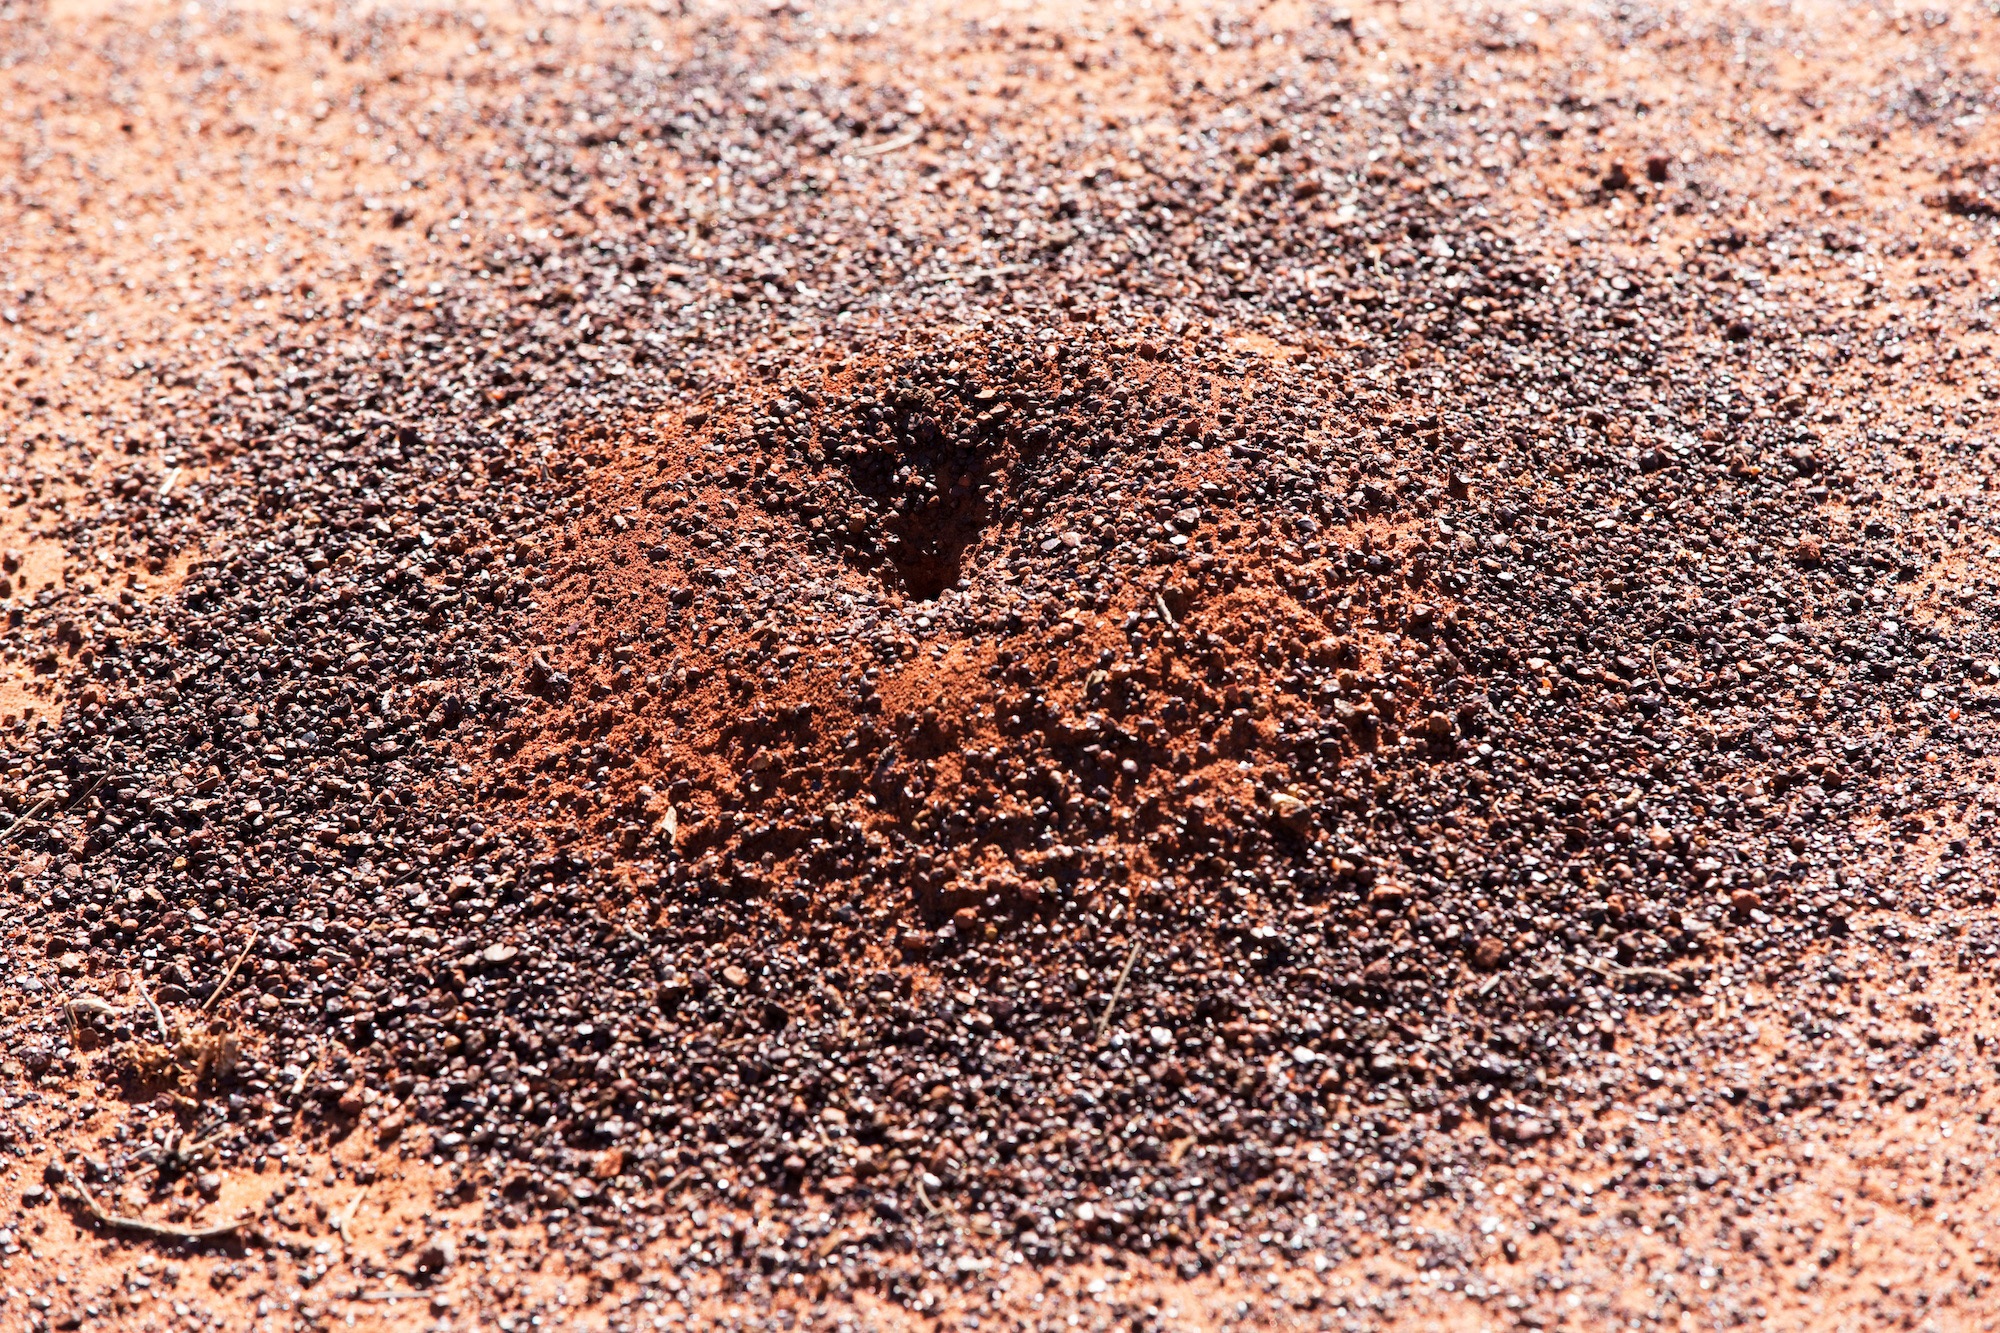 Ant Hill, Winton, Queensland, Australia, 2013